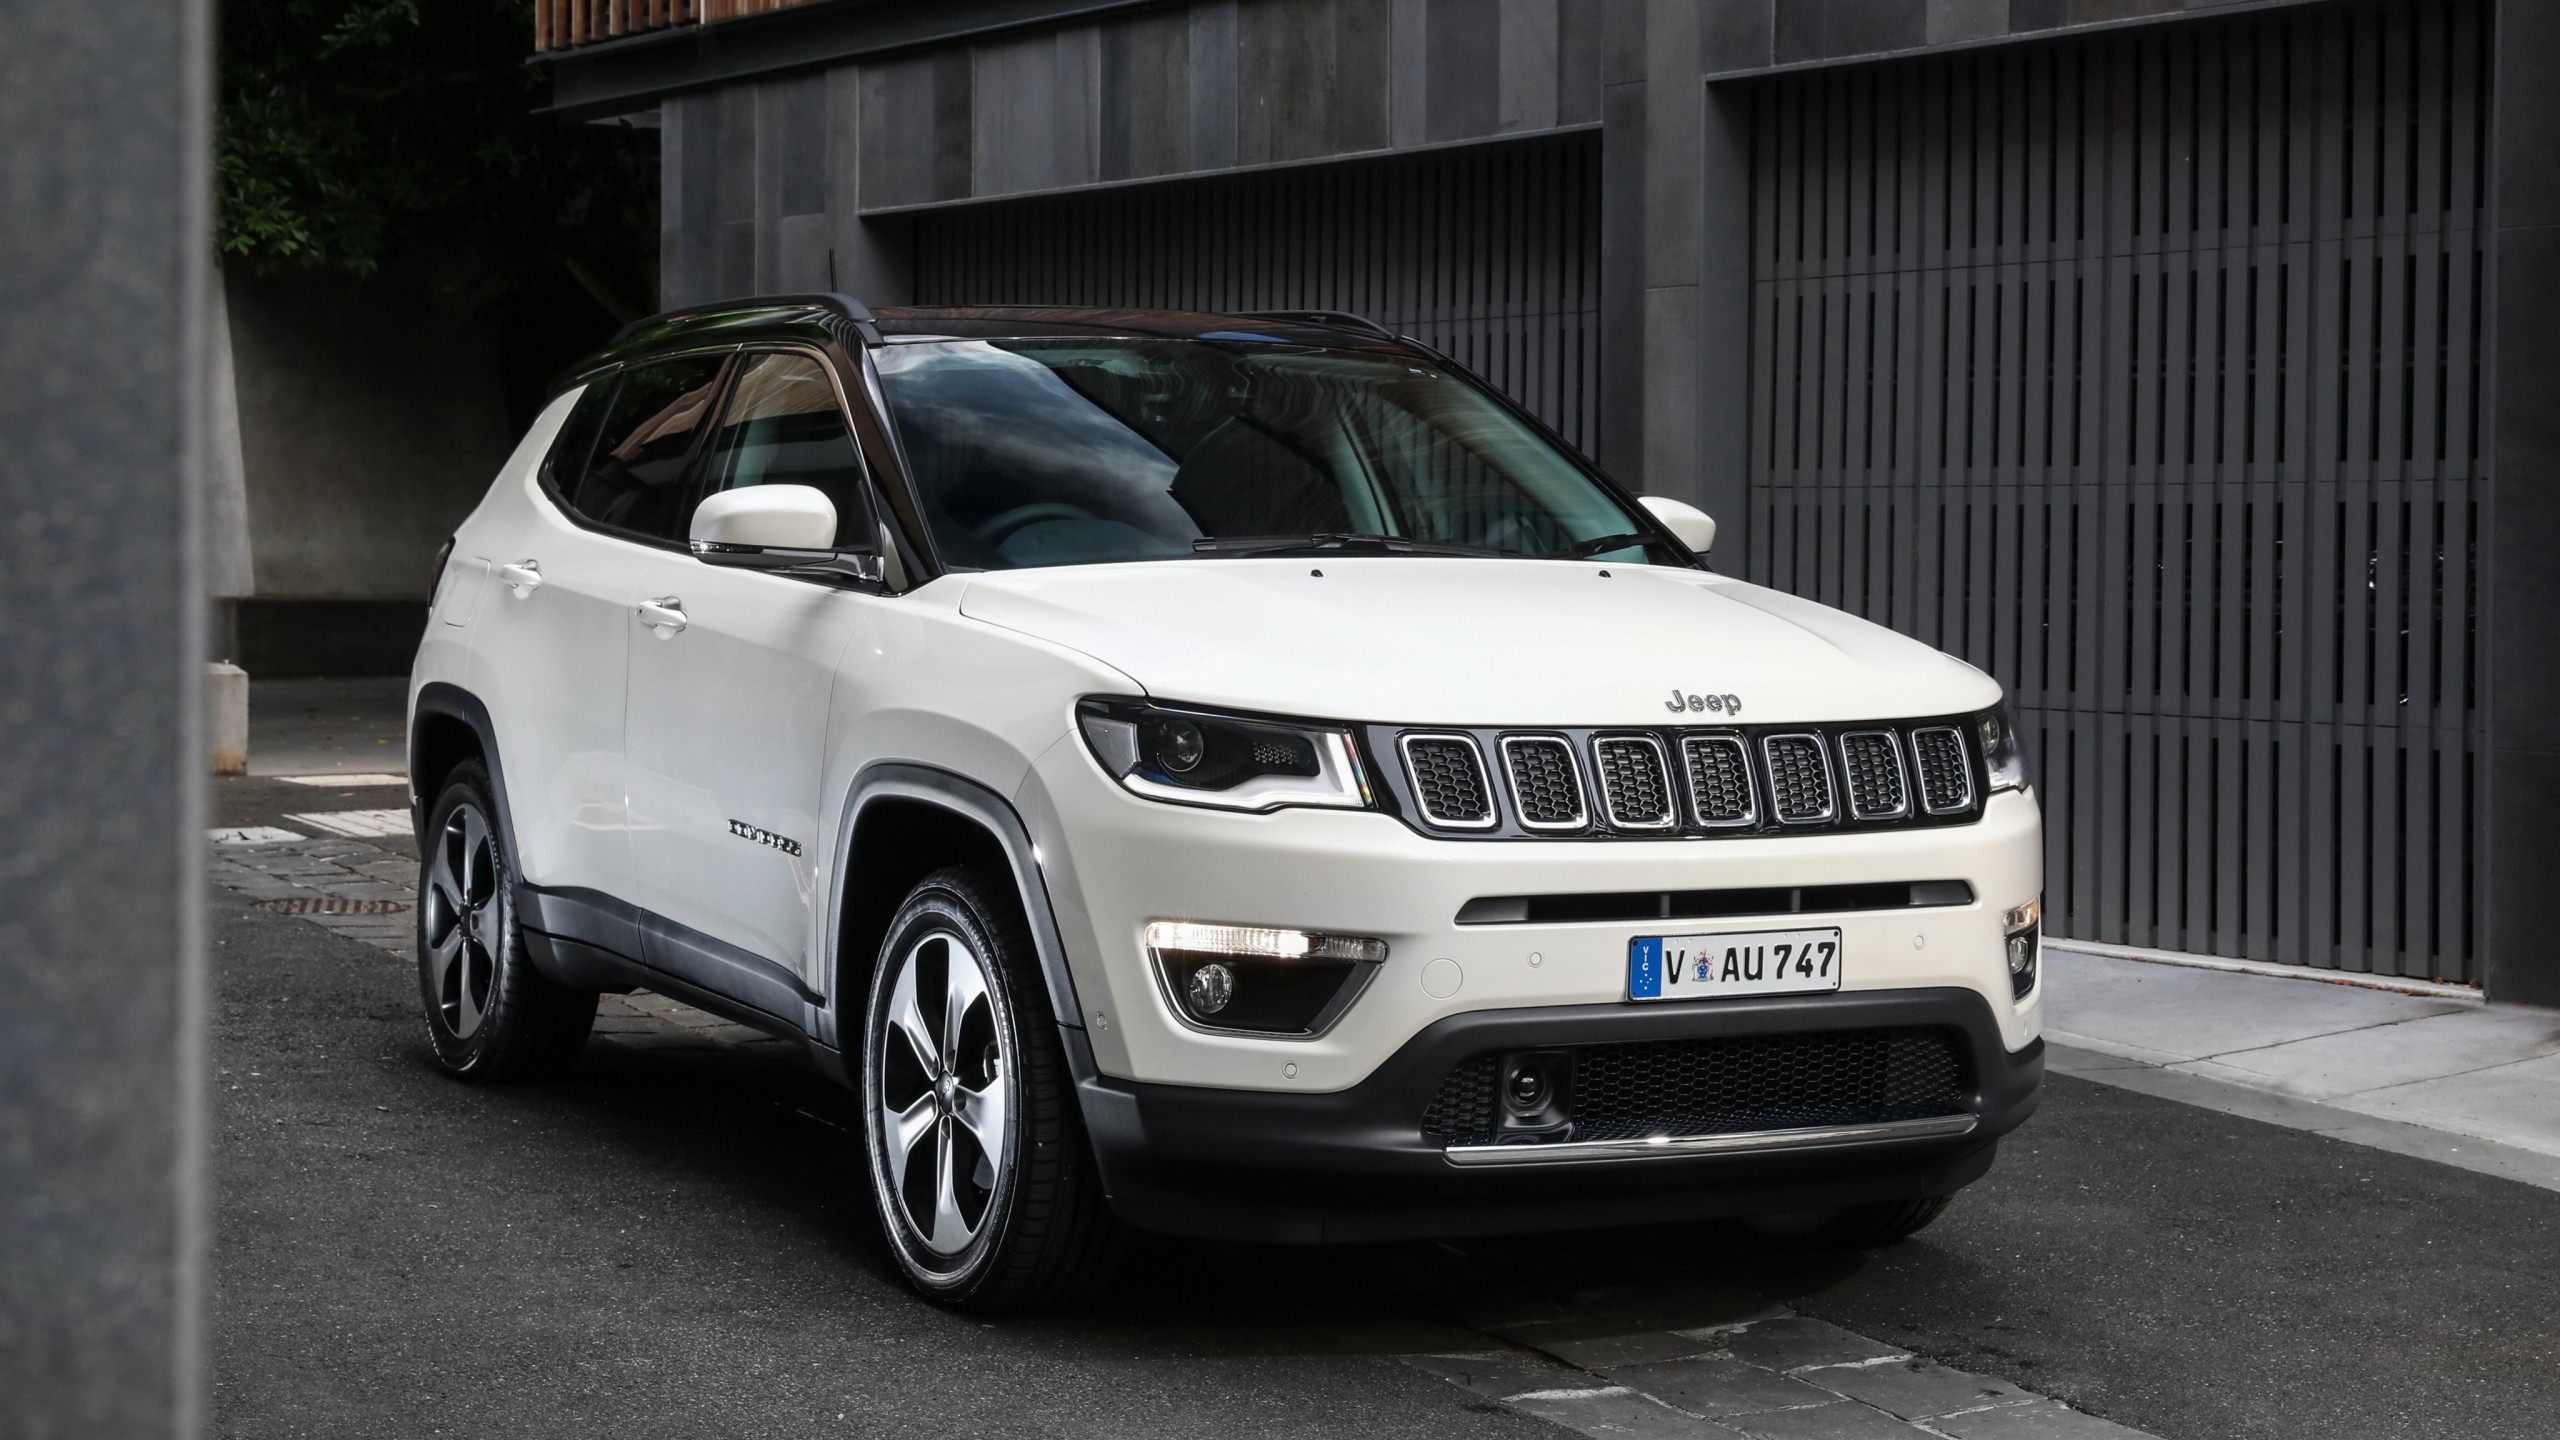 Hd Car Wallpapers For Android Tablets 2018 Jeep Compass Limited 4k 2 Wallpaper Hd Car